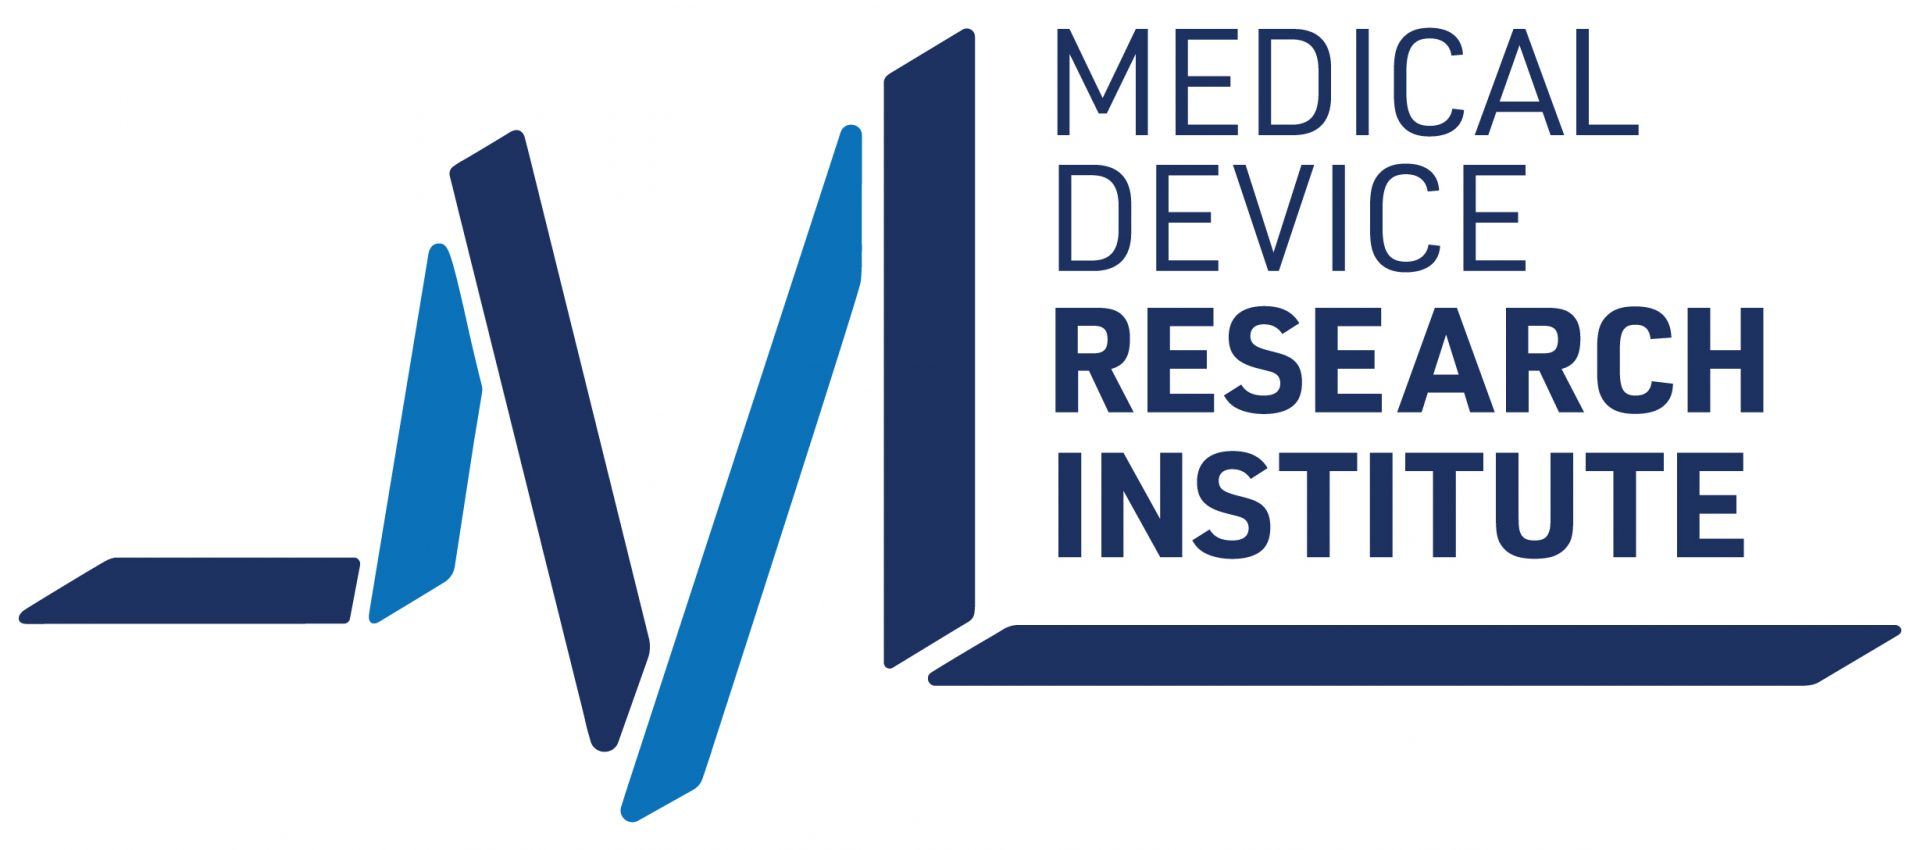 Medical Device Research Institute - Logo